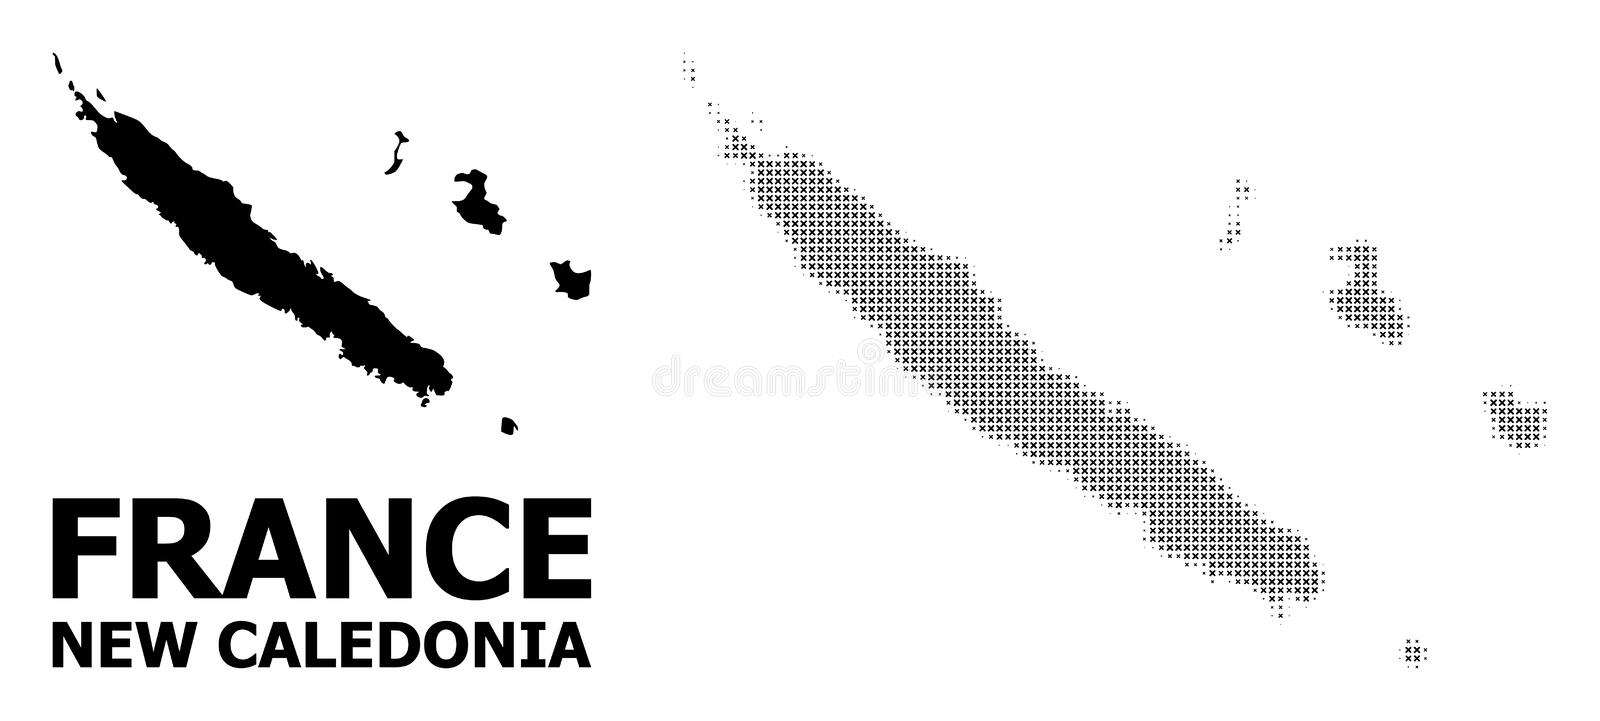 Vector Halftone Mosaic and Solid Map of New Caledonia royalty free illustration